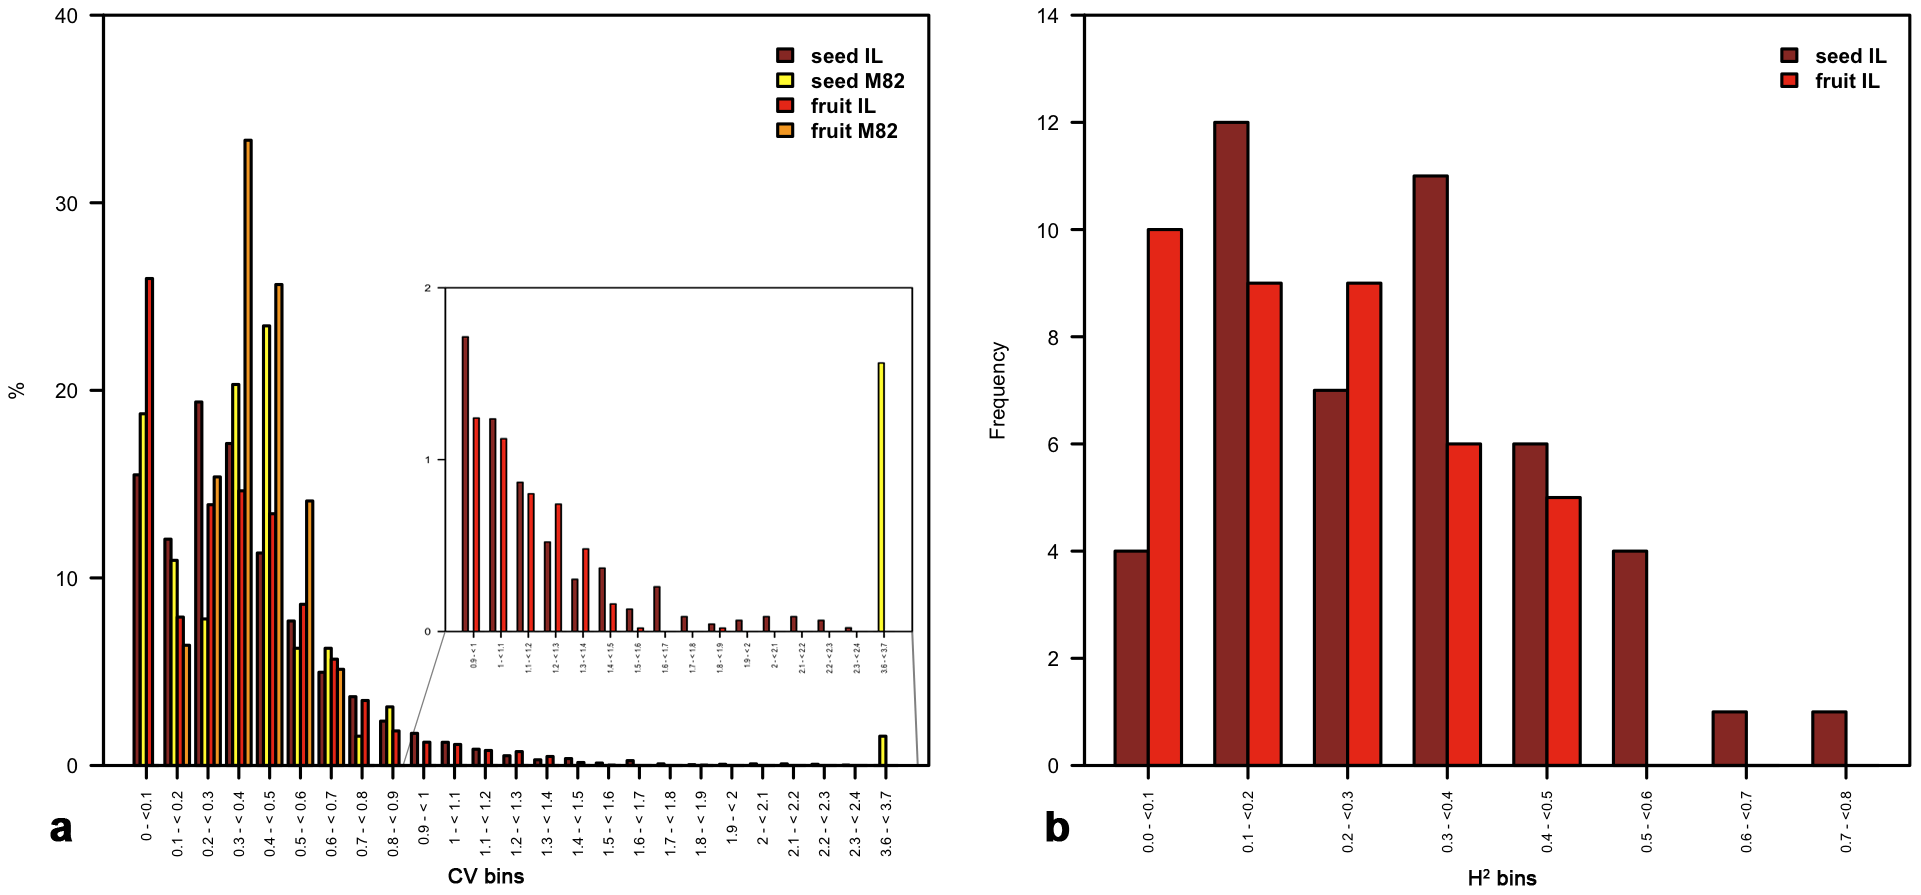 Tests of heritability as estimated on a tomato seed and fruit IL population.